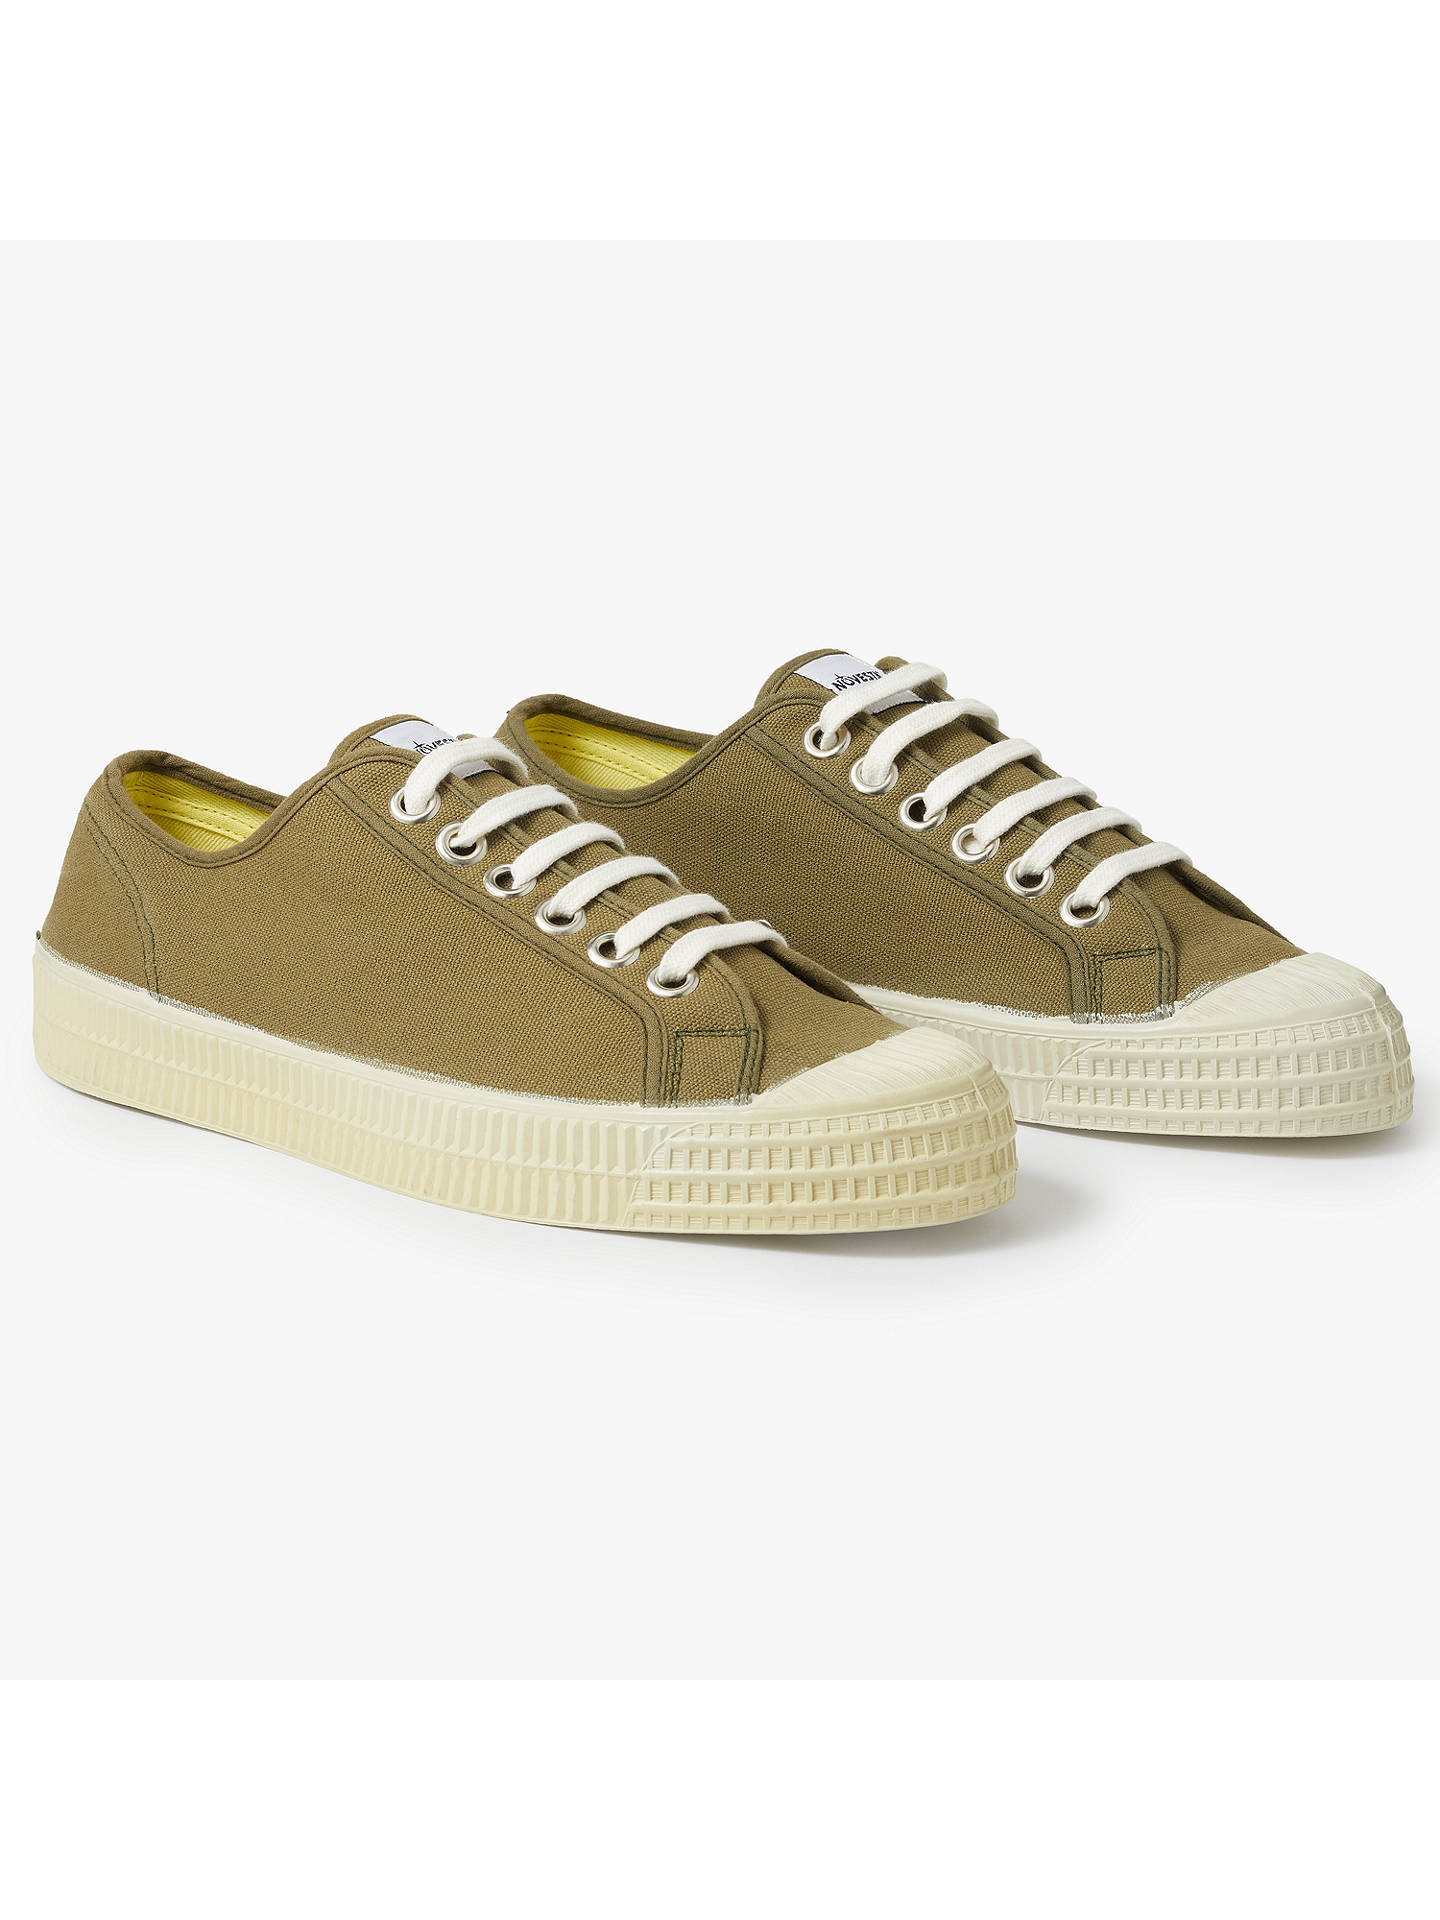 BuyNovesta Star Master Canvas Trainers, Khaki, 7 Online at johnlewis.com